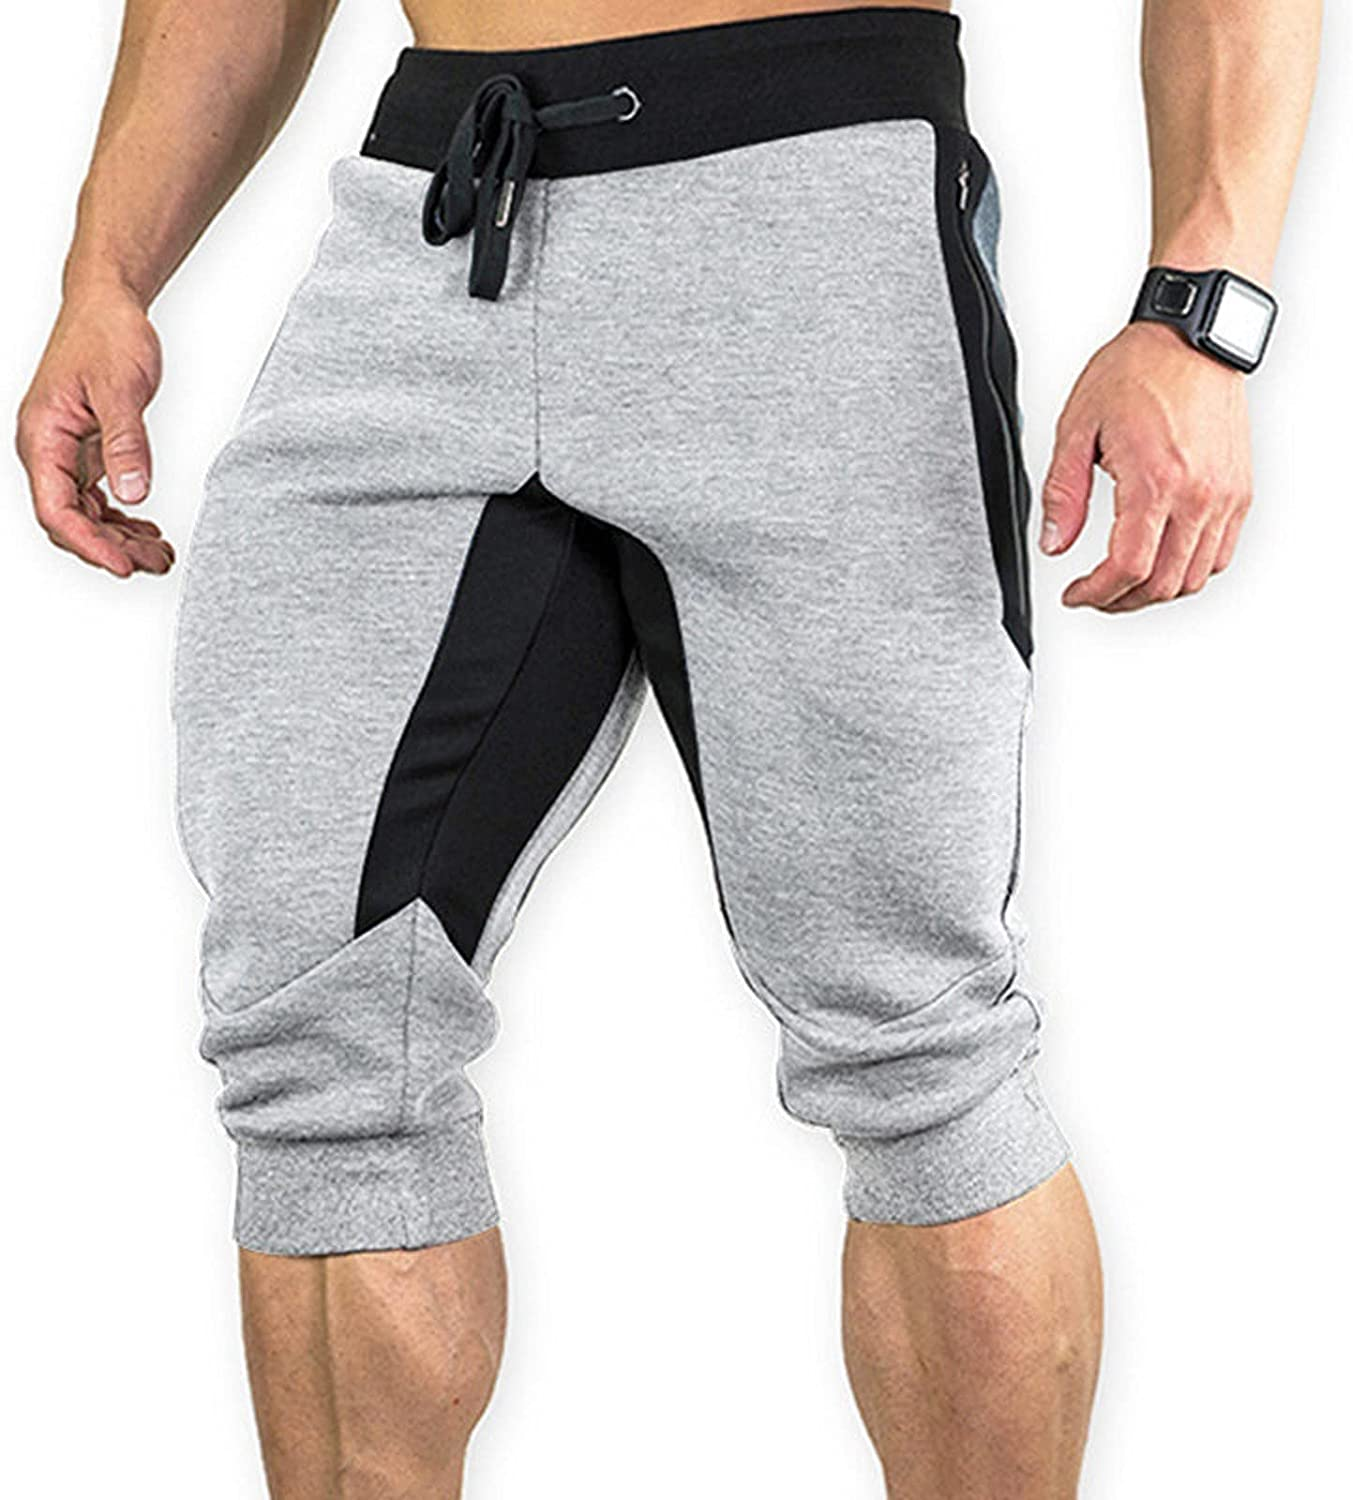 Sports Leisure Slim Running Shorts for Men, Men's Stretch Slim Fit Outdoor Training Sports Cropped Pants with Pockets